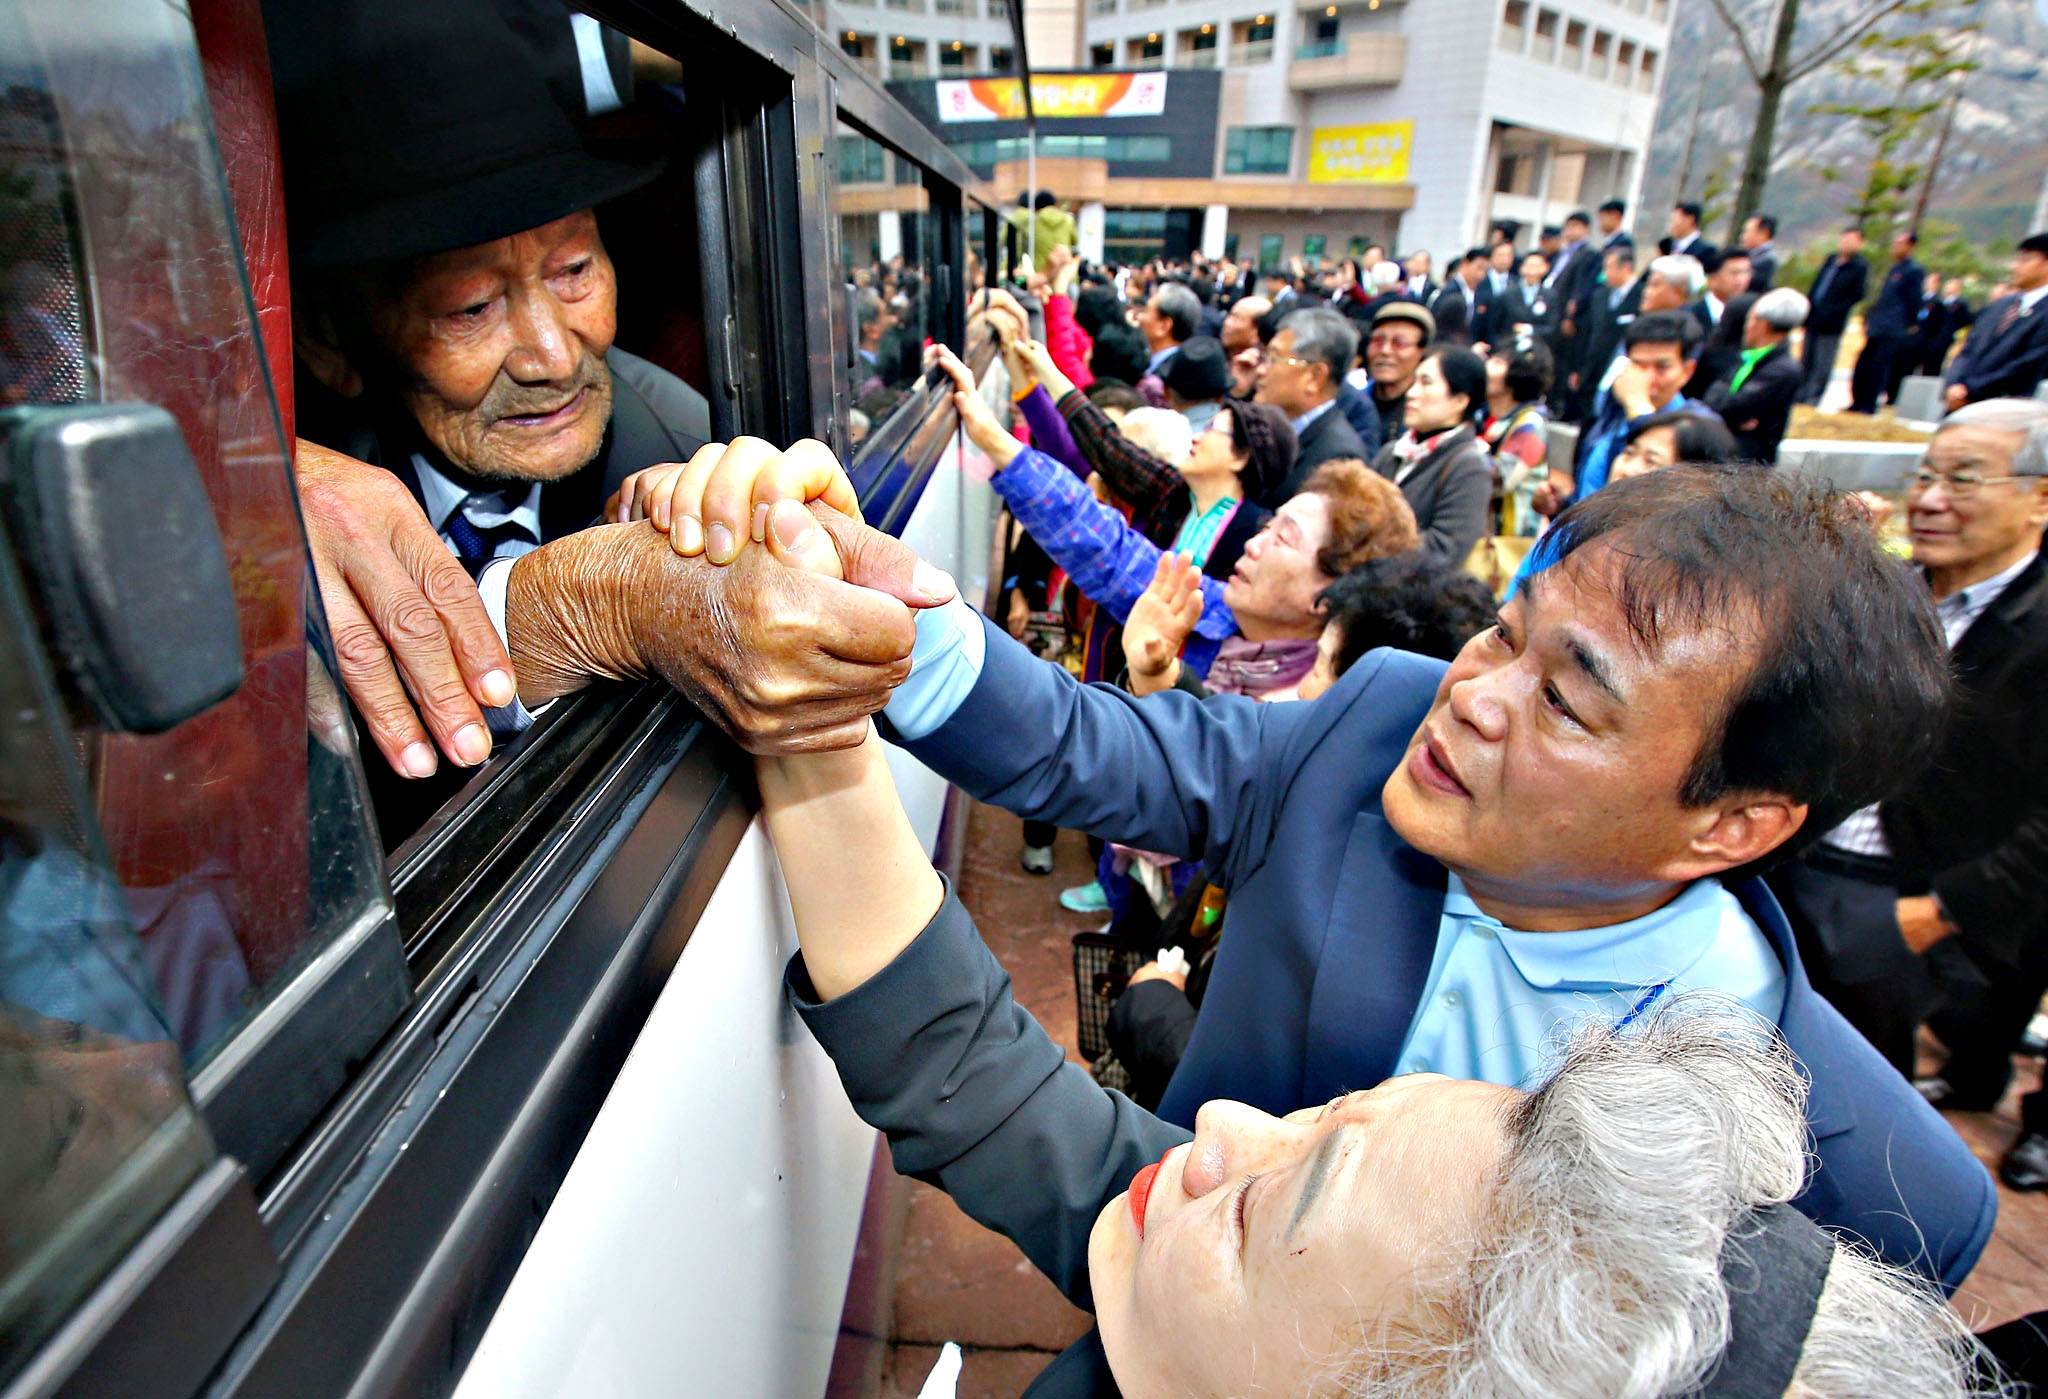 North Koreans grip hands of their South Korean relatives as they bid farewell after a separated family reunion meeting at the Mount Kumgang resort on the North's southeastern coast on October 22, 2015.  North and South Korean families divided by war for more than 60 years said a final, traumatic farewell on Thursday after a reunion event that, for most, marked the last time they will ever see each other